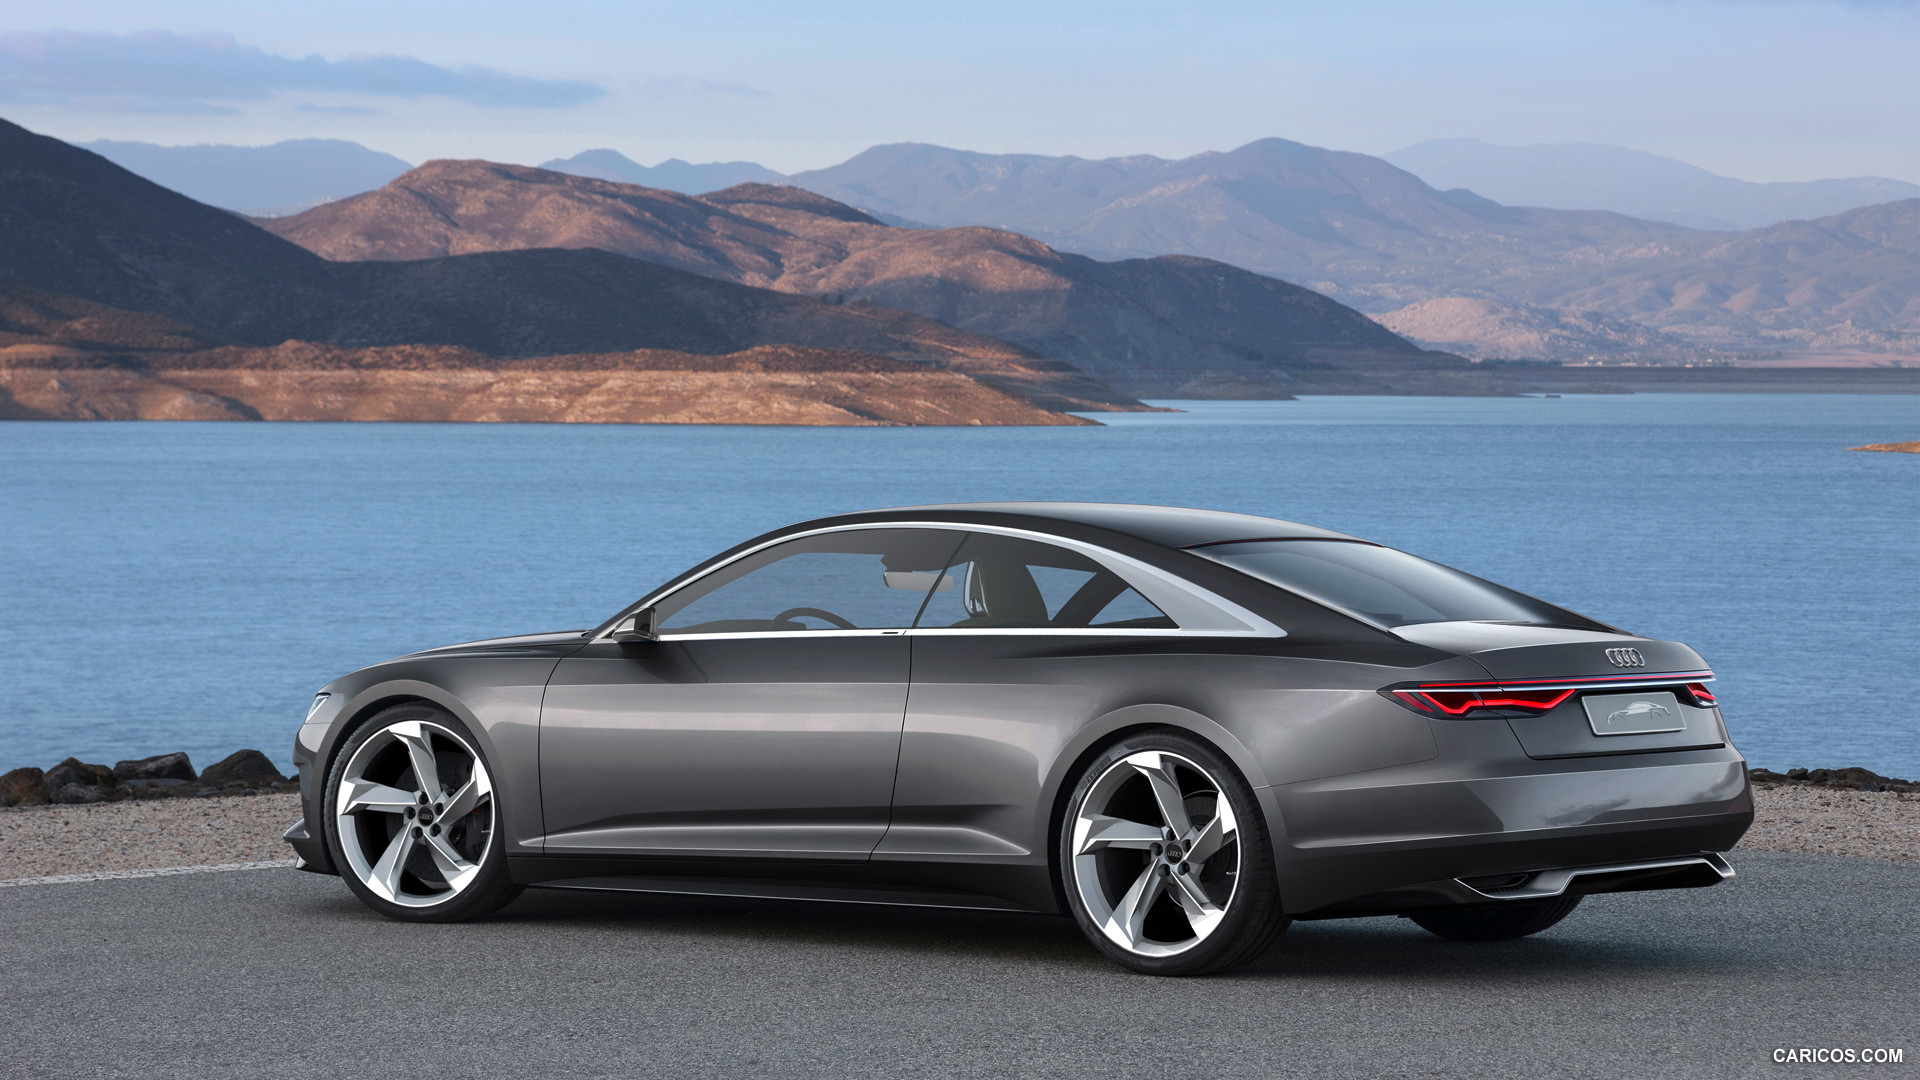 Audi Prologue Piloted Driving Computer Wallpaper